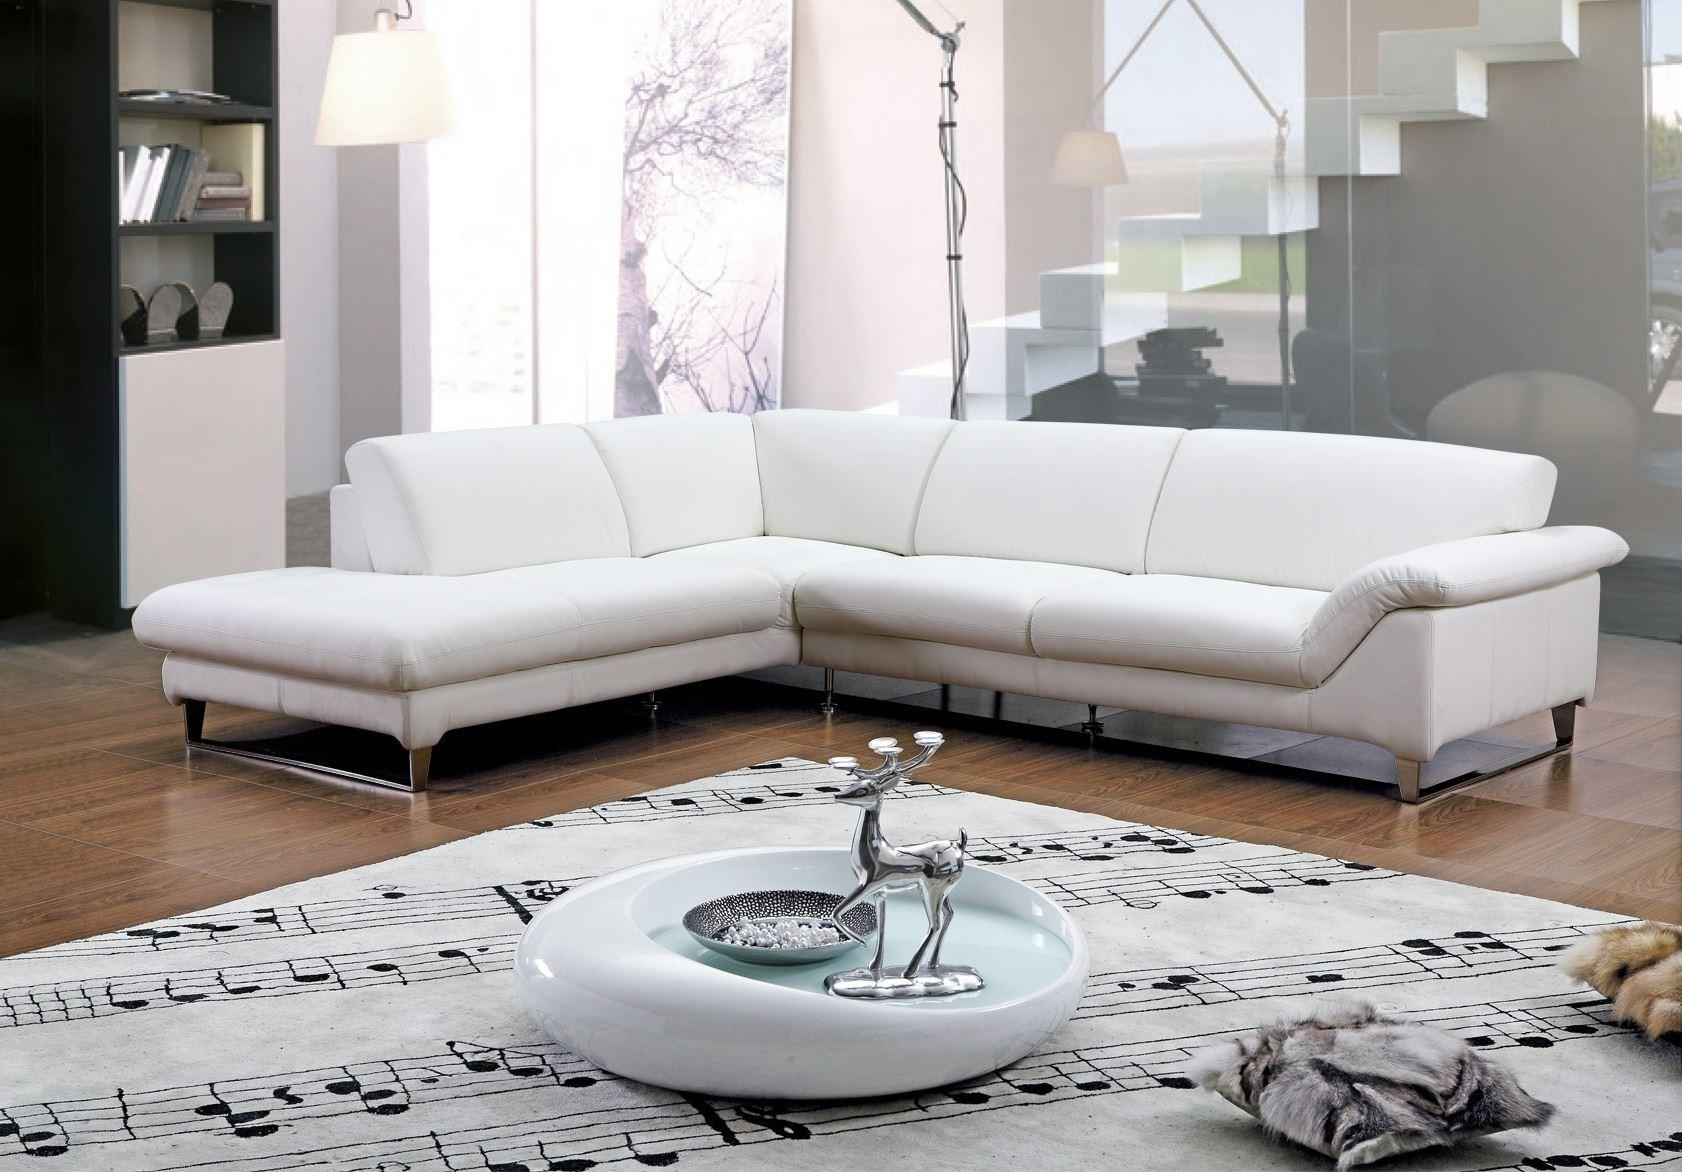 White Leather Sofa: A Good Furniture For Your Living Room 4229 Inside White Leather Sofas (Image 17 of 20)